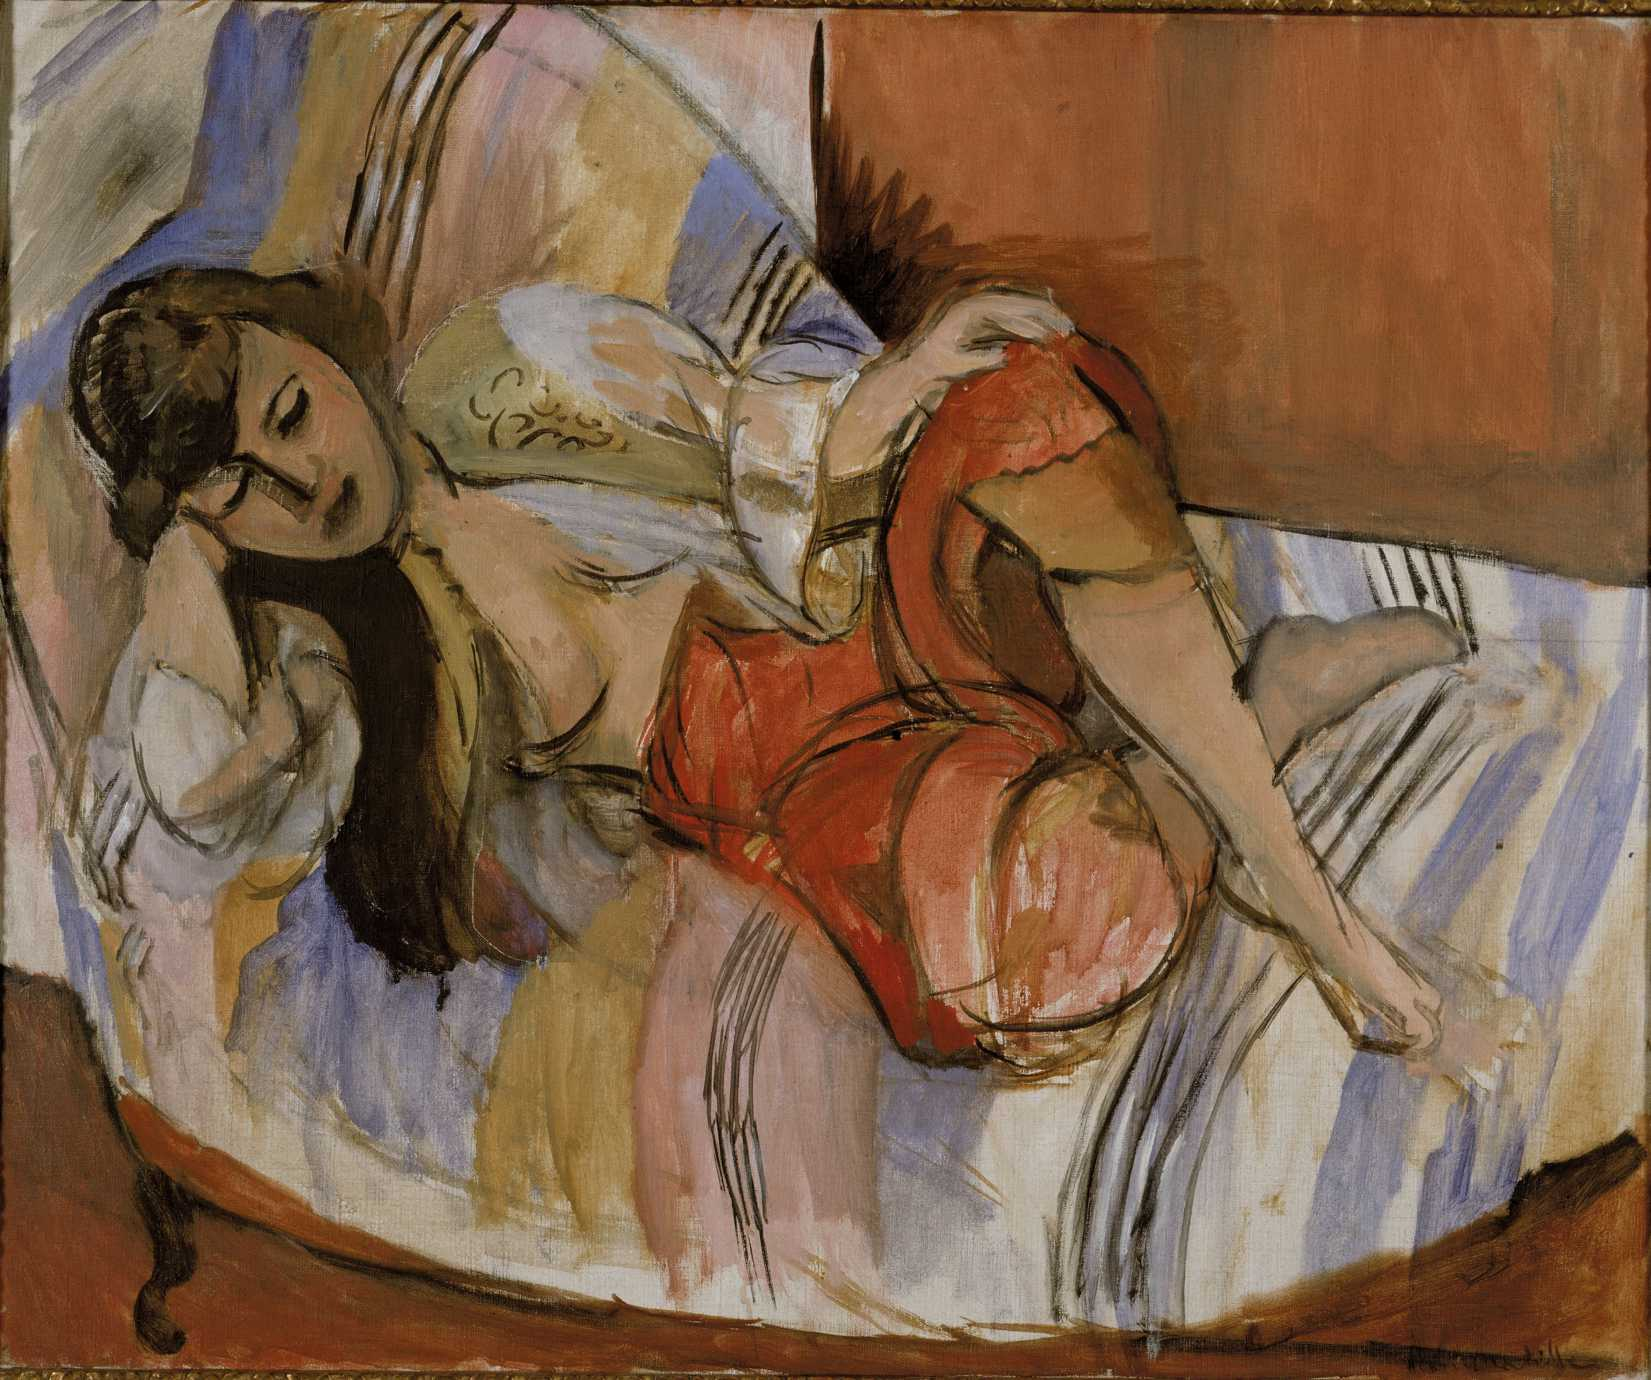 The 1921 painting Odalisque by Henri Matisse, one of the artists whose works is believed to have been retrieved after being seized by the Nazis